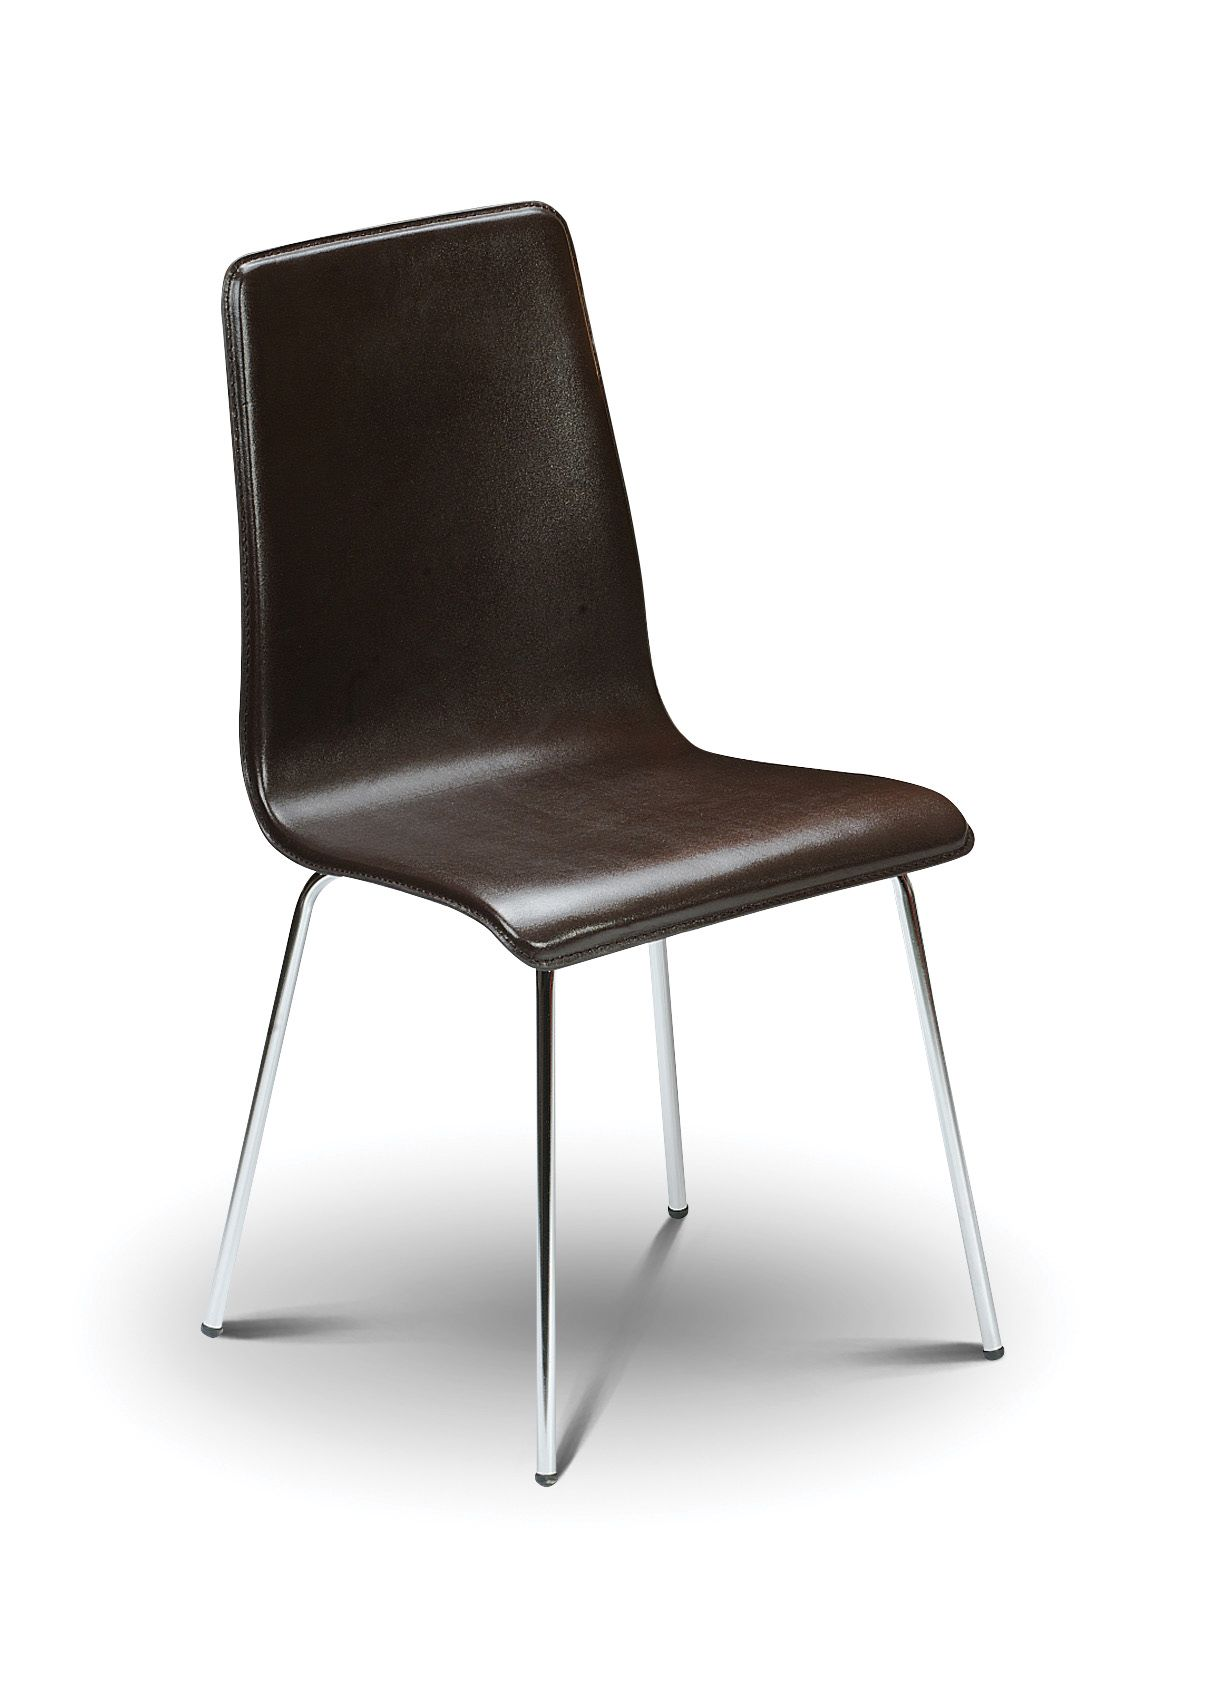 chrome dining chairs uk chair webbing repair sagunto modern brown leather with jb301